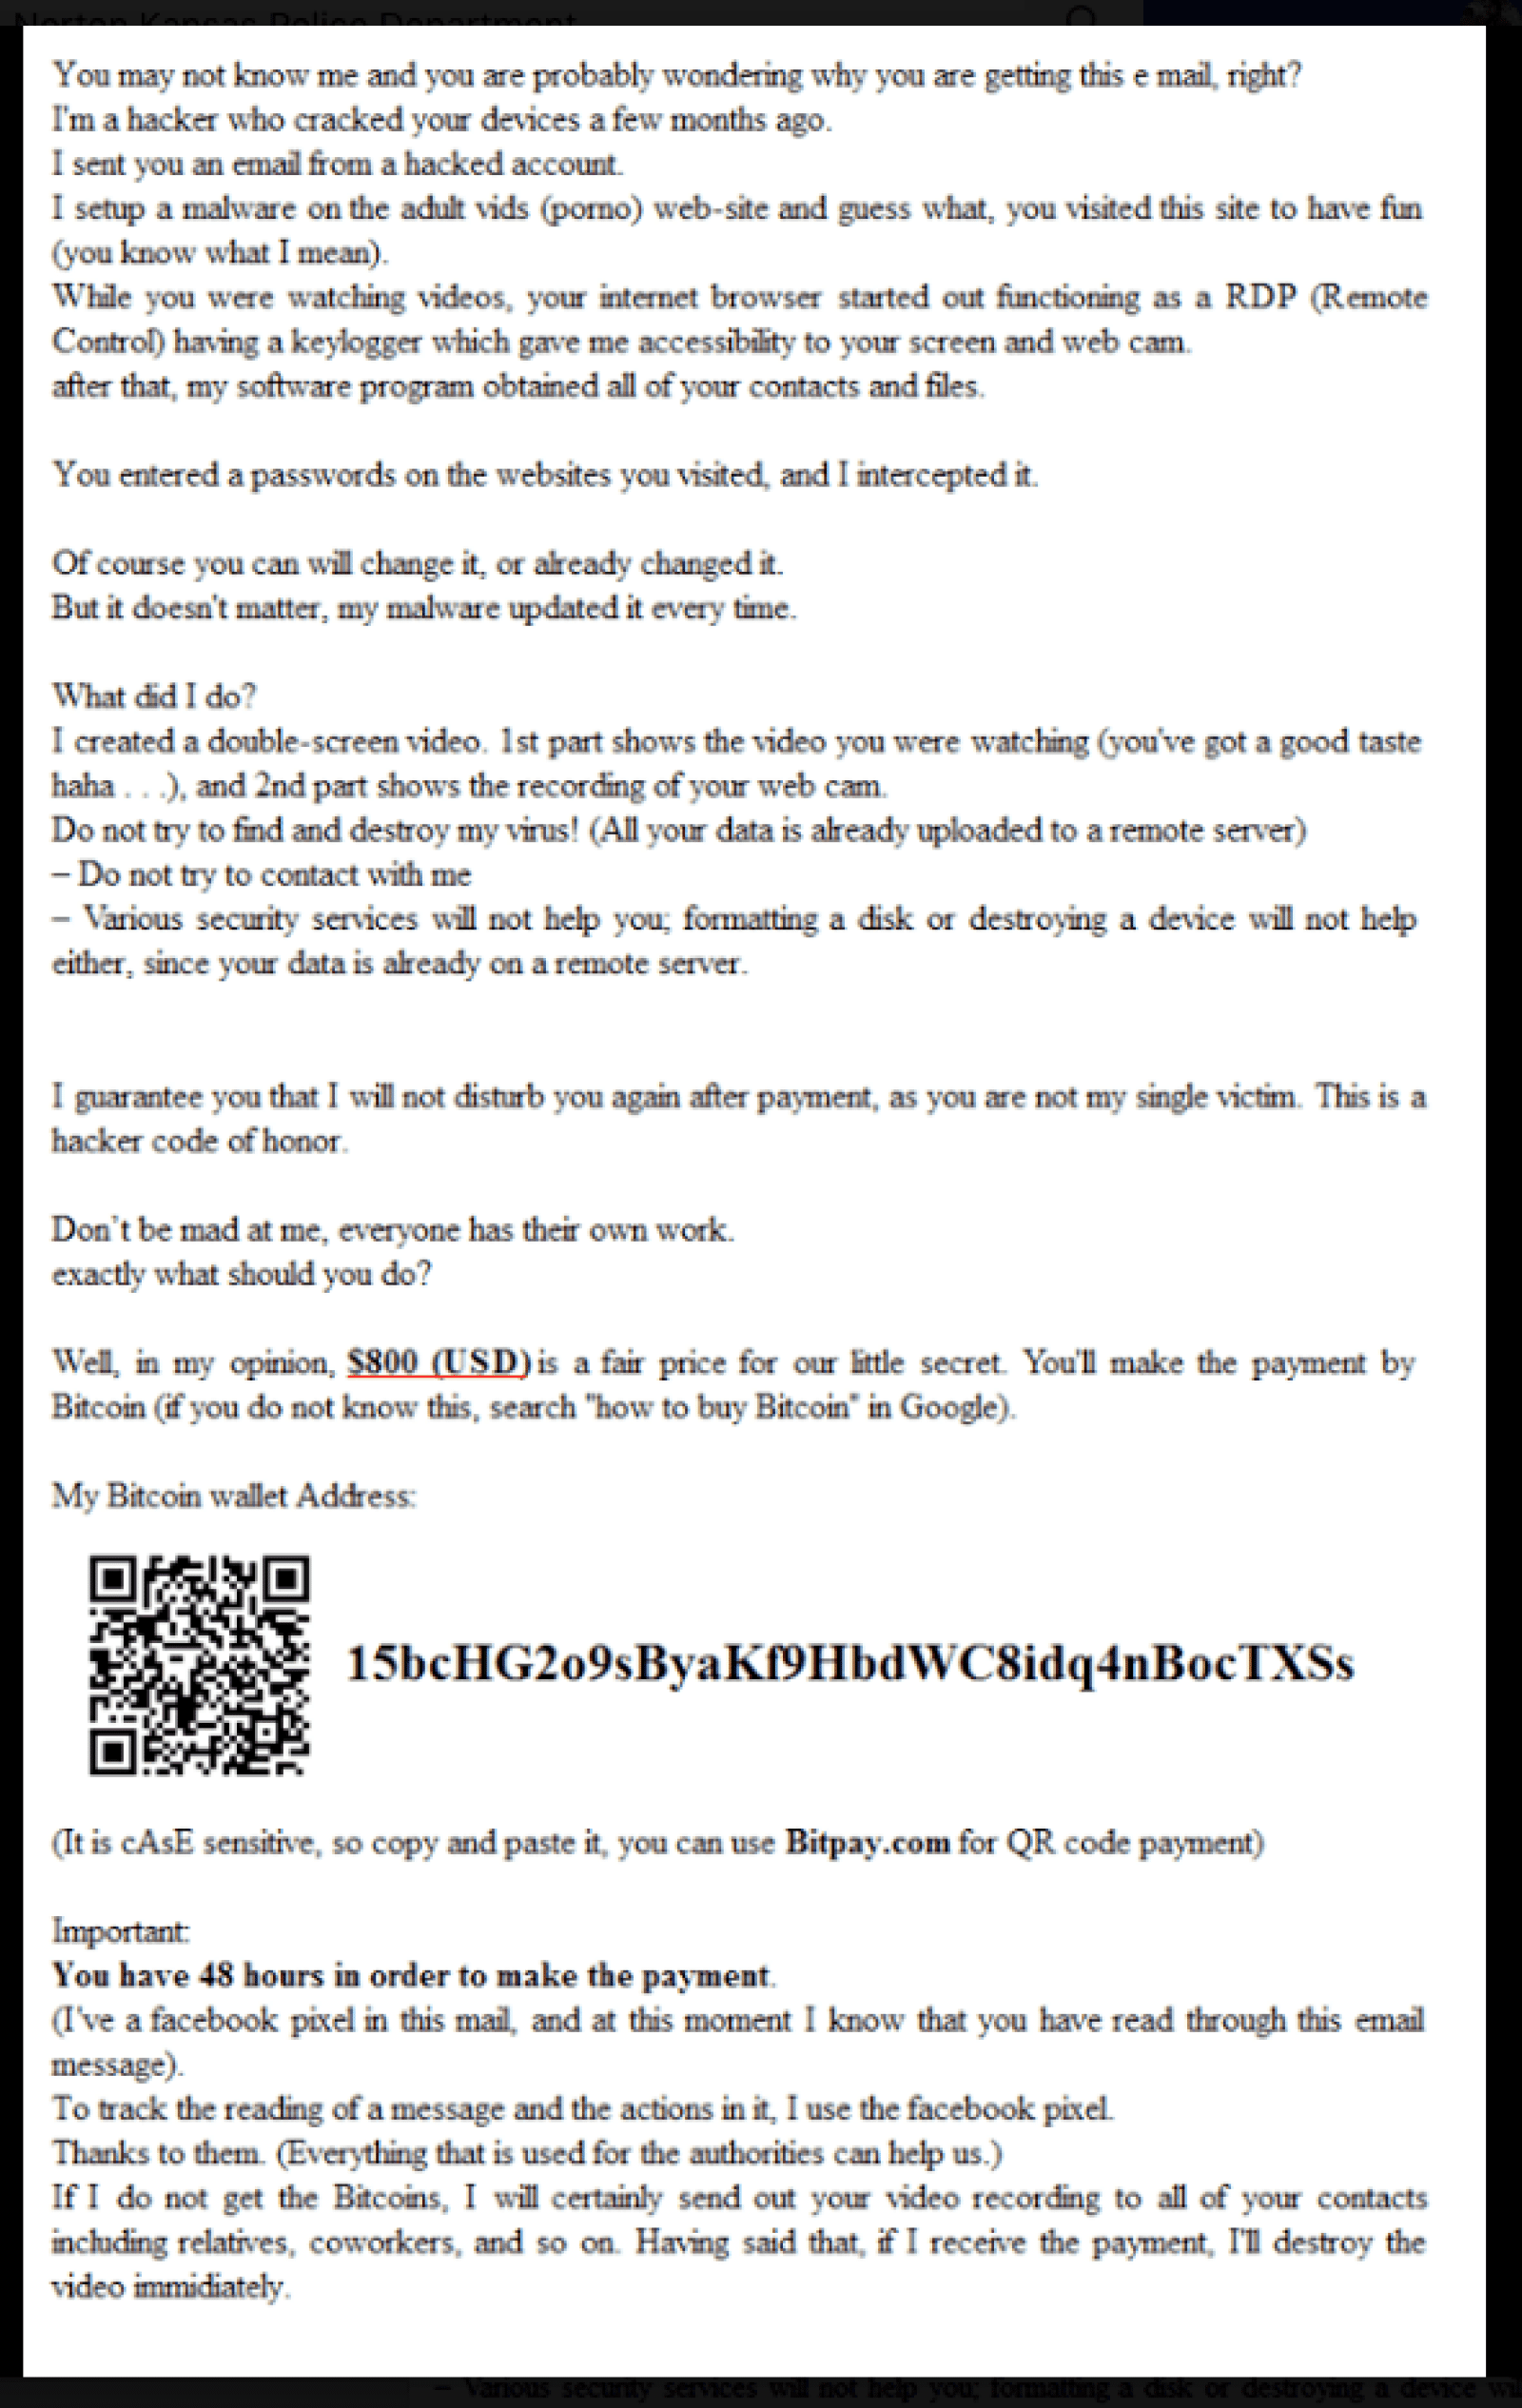 bitcoin extortion scam